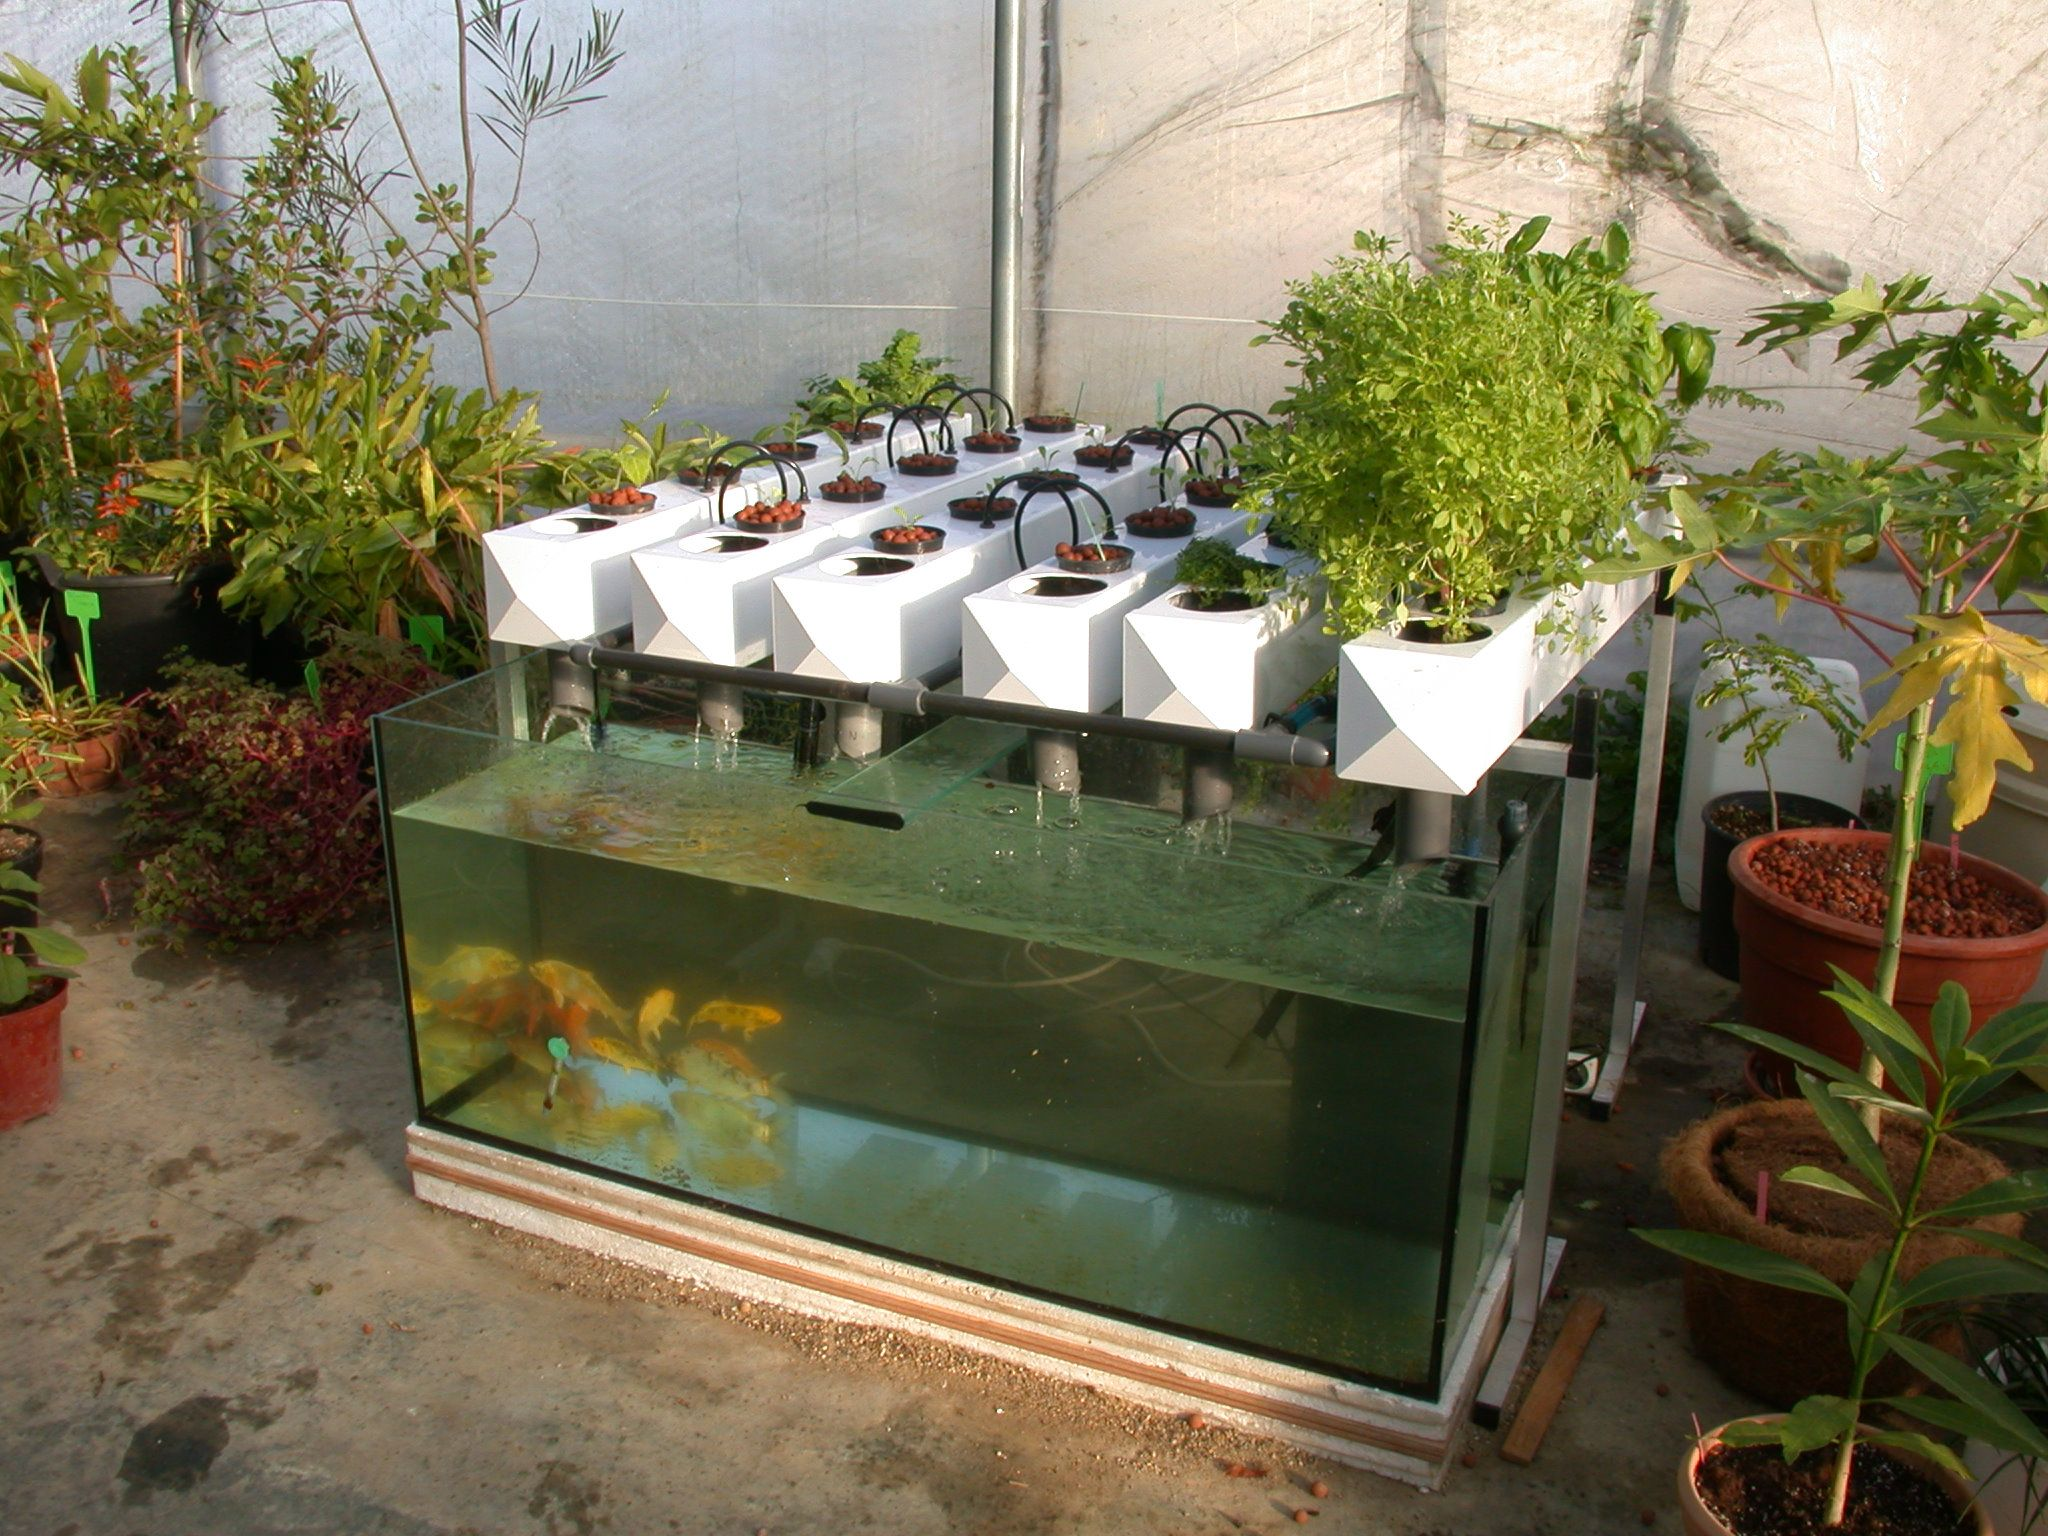 Aquaponics general hydroponics europe ghe official for Aquaponics pond design